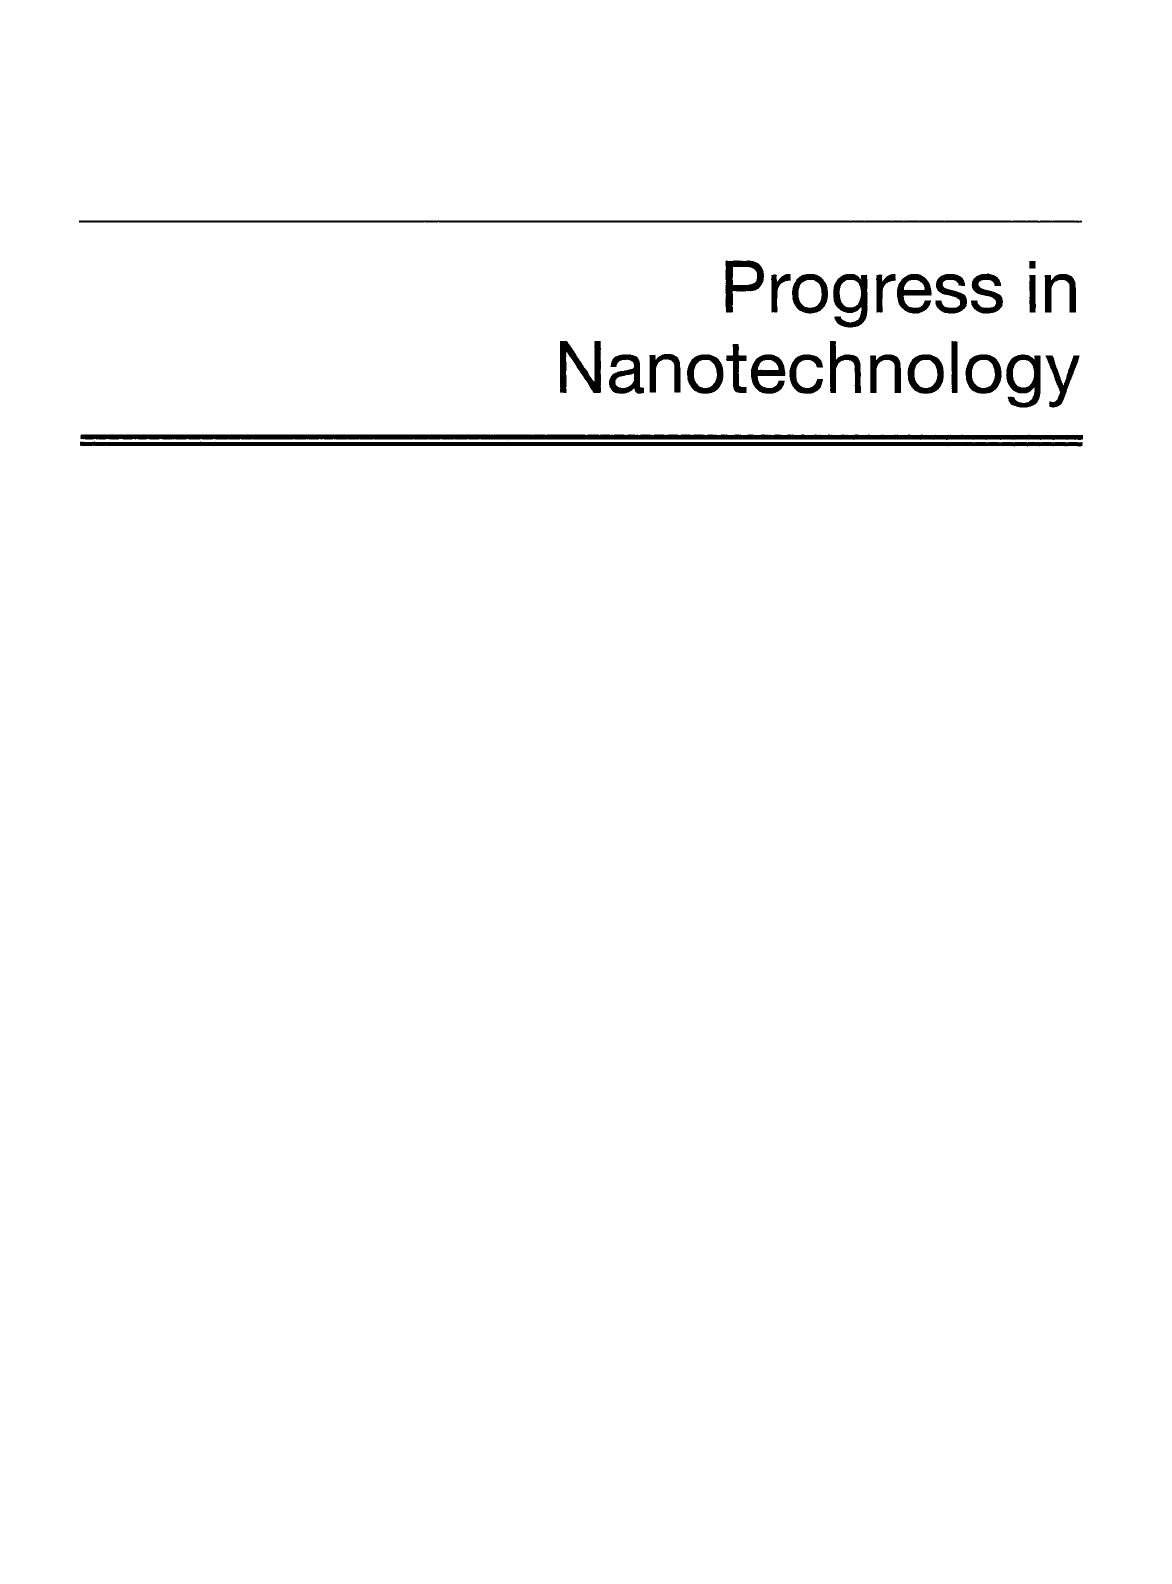 Progress In Nanotechnology: Applications (A Progress In